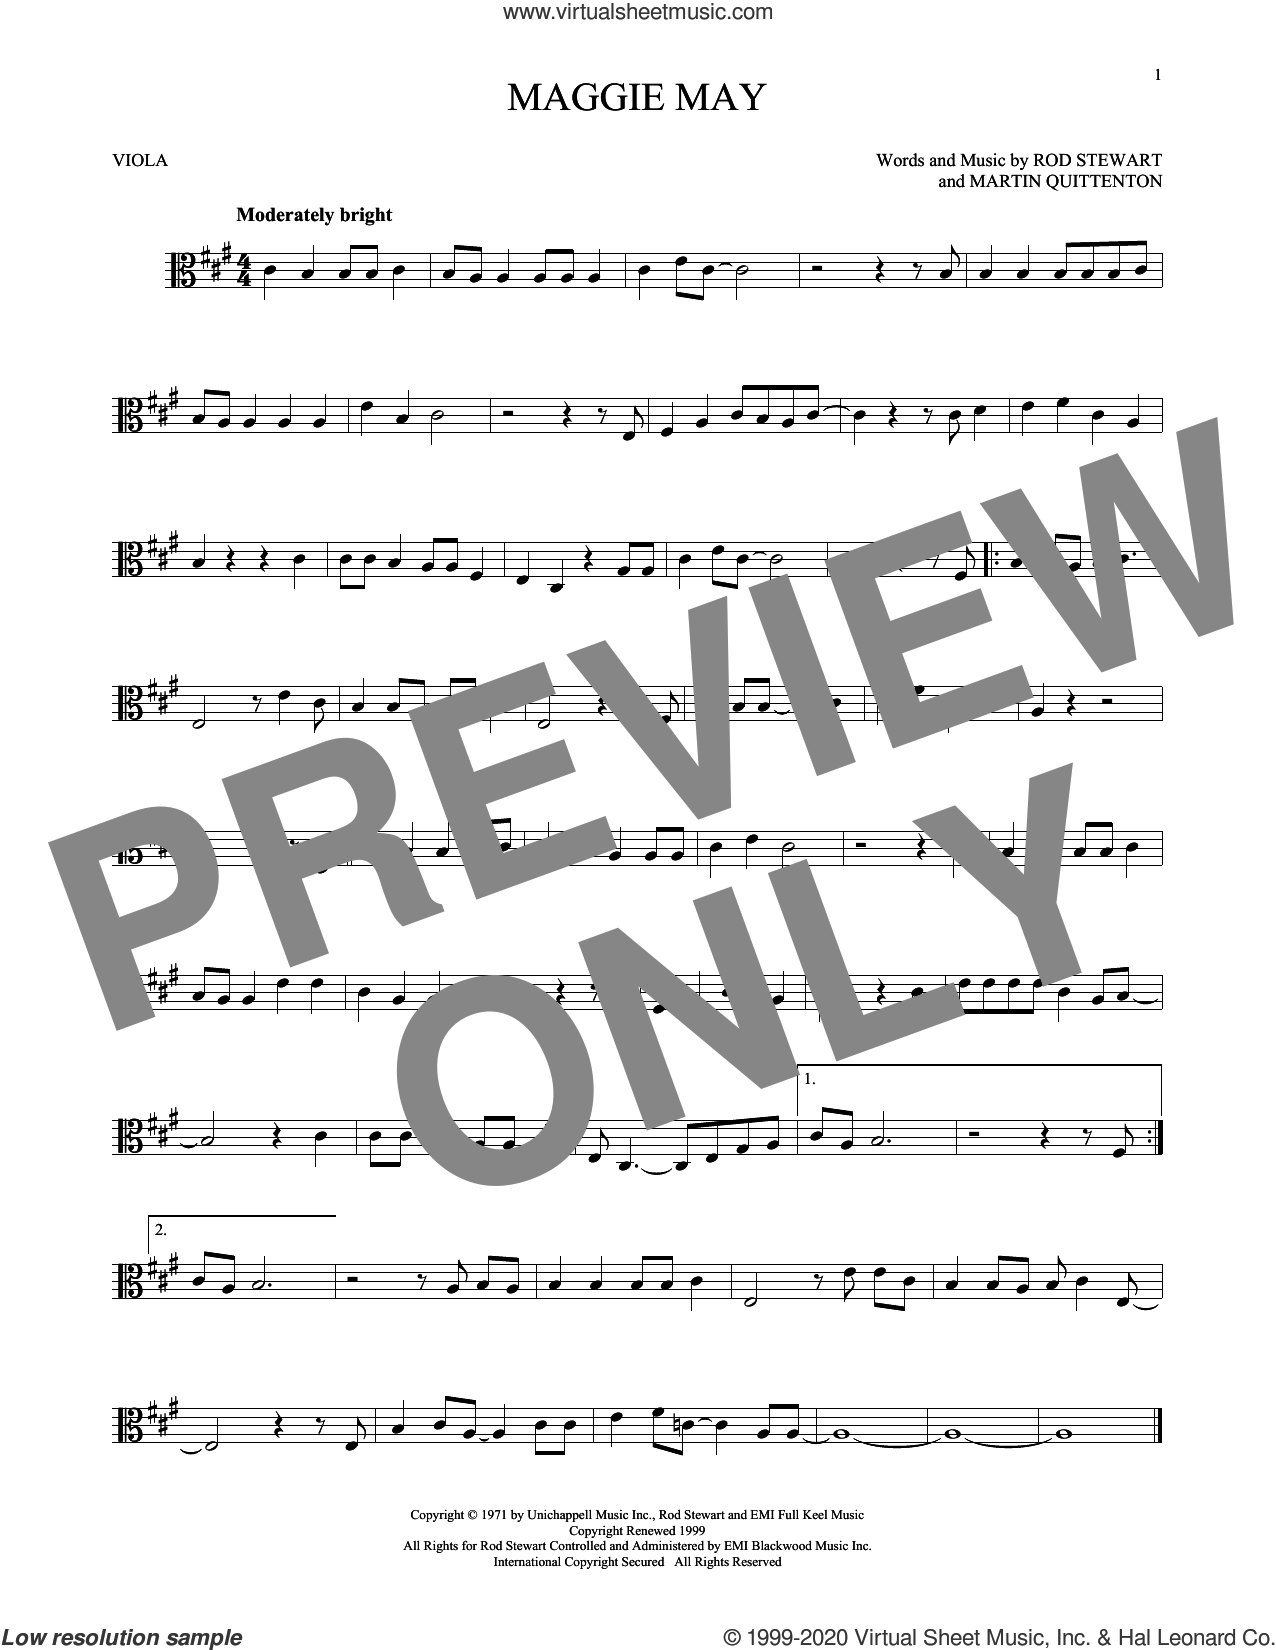 Maggie May sheet music for viola solo by Rod Stewart and Martin Quittenton, intermediate skill level